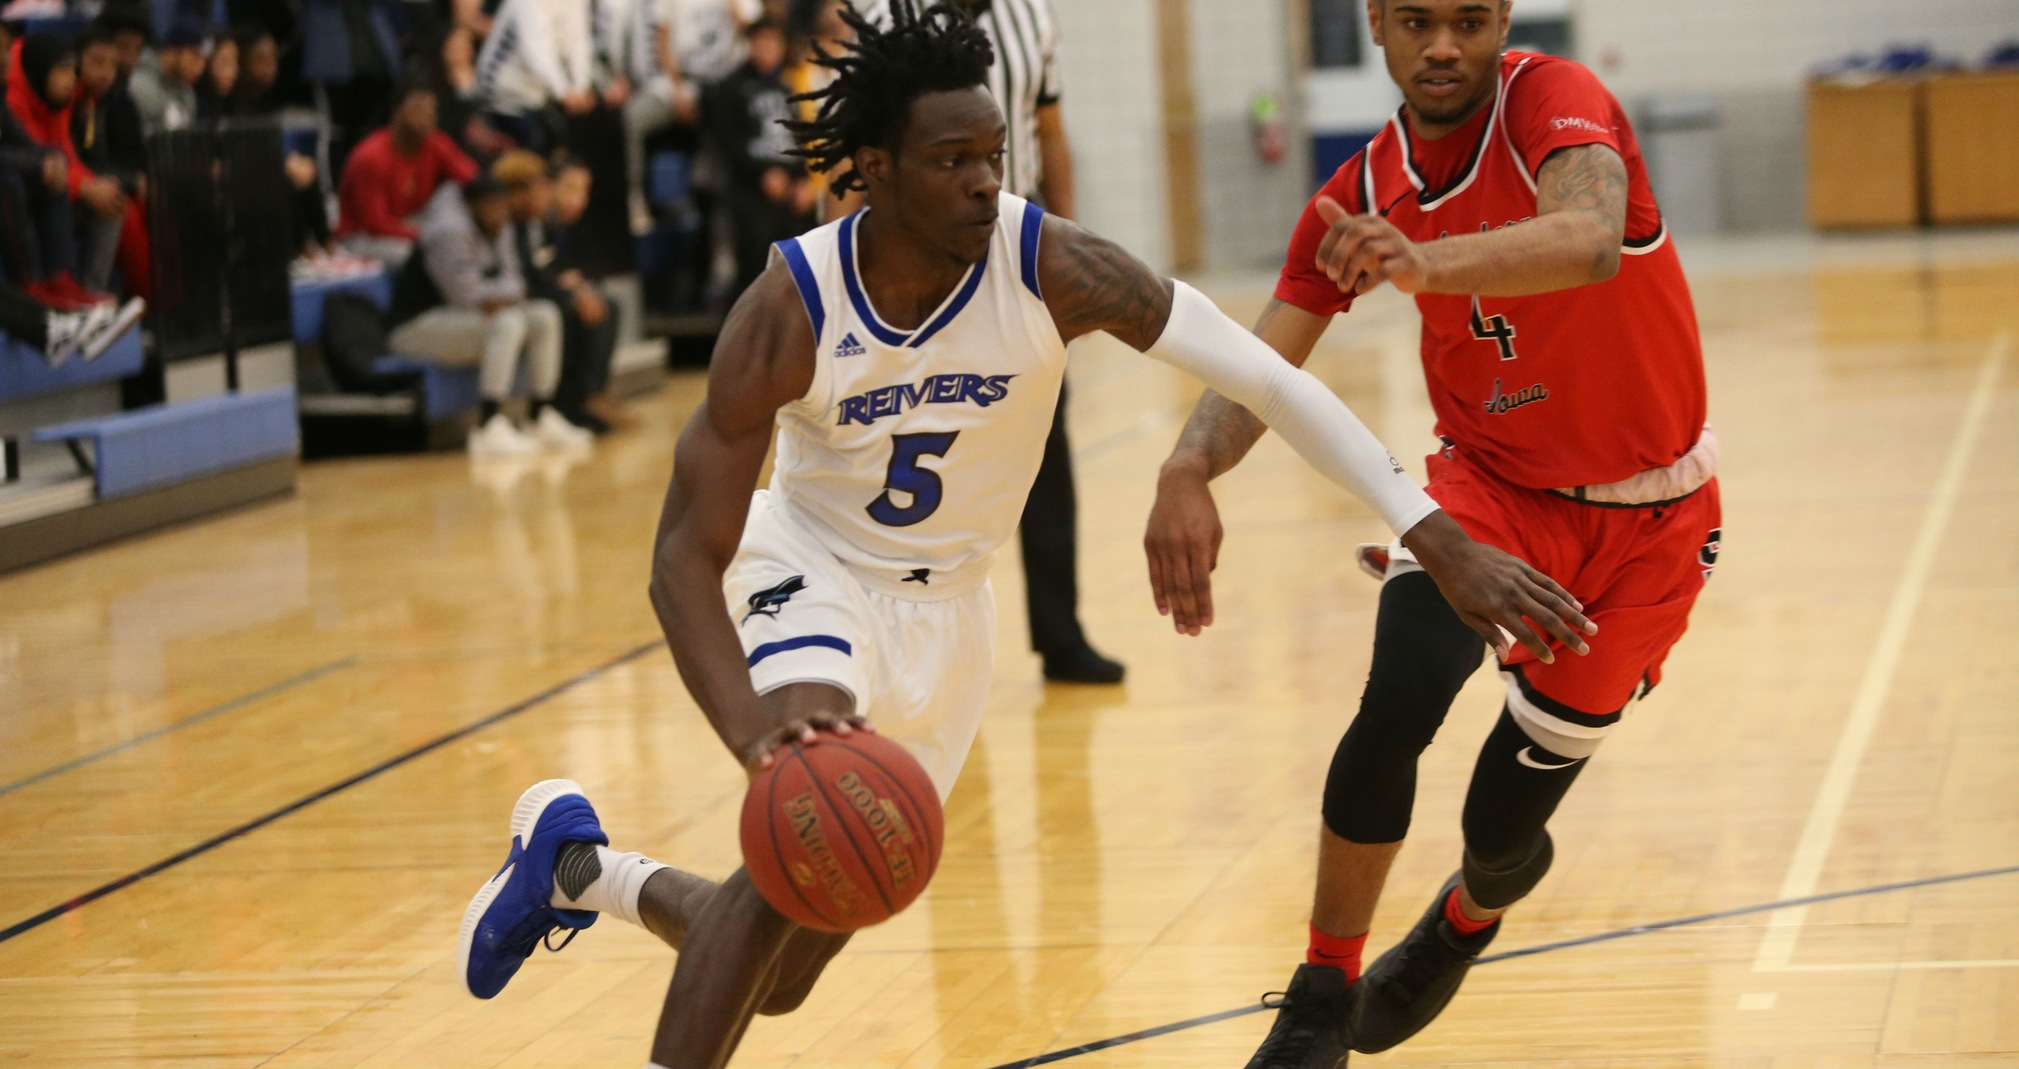 Travon Broadway collected his first double-double of the season (28pts-10rebs), as Iowa Western beat Cloud County (KS) for the second time this season.